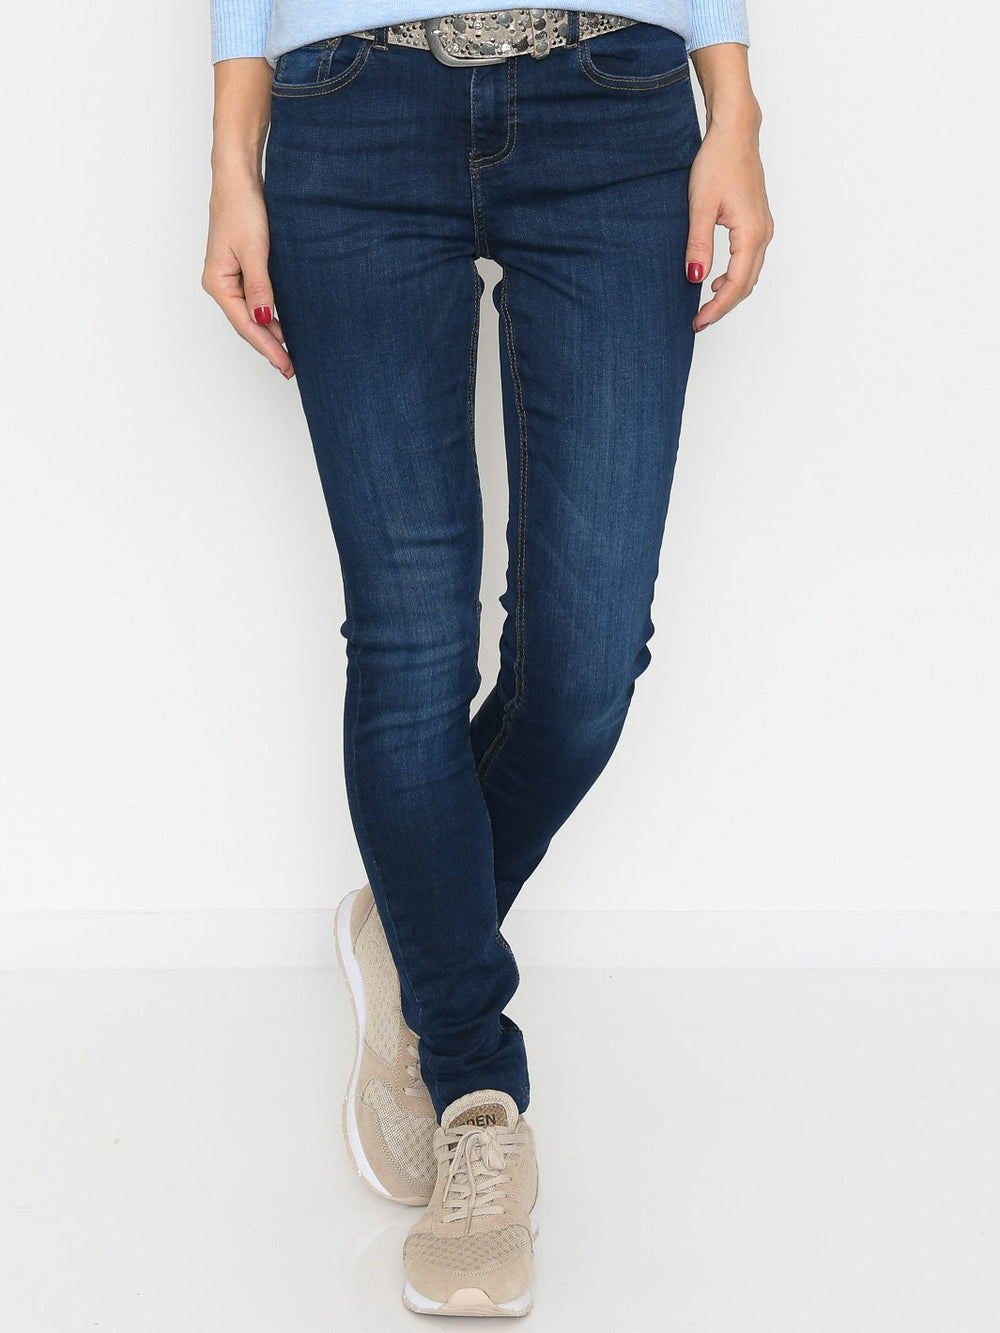 B.Young Lola Luni jeans - 5 pocket dark ink - Online-Mode